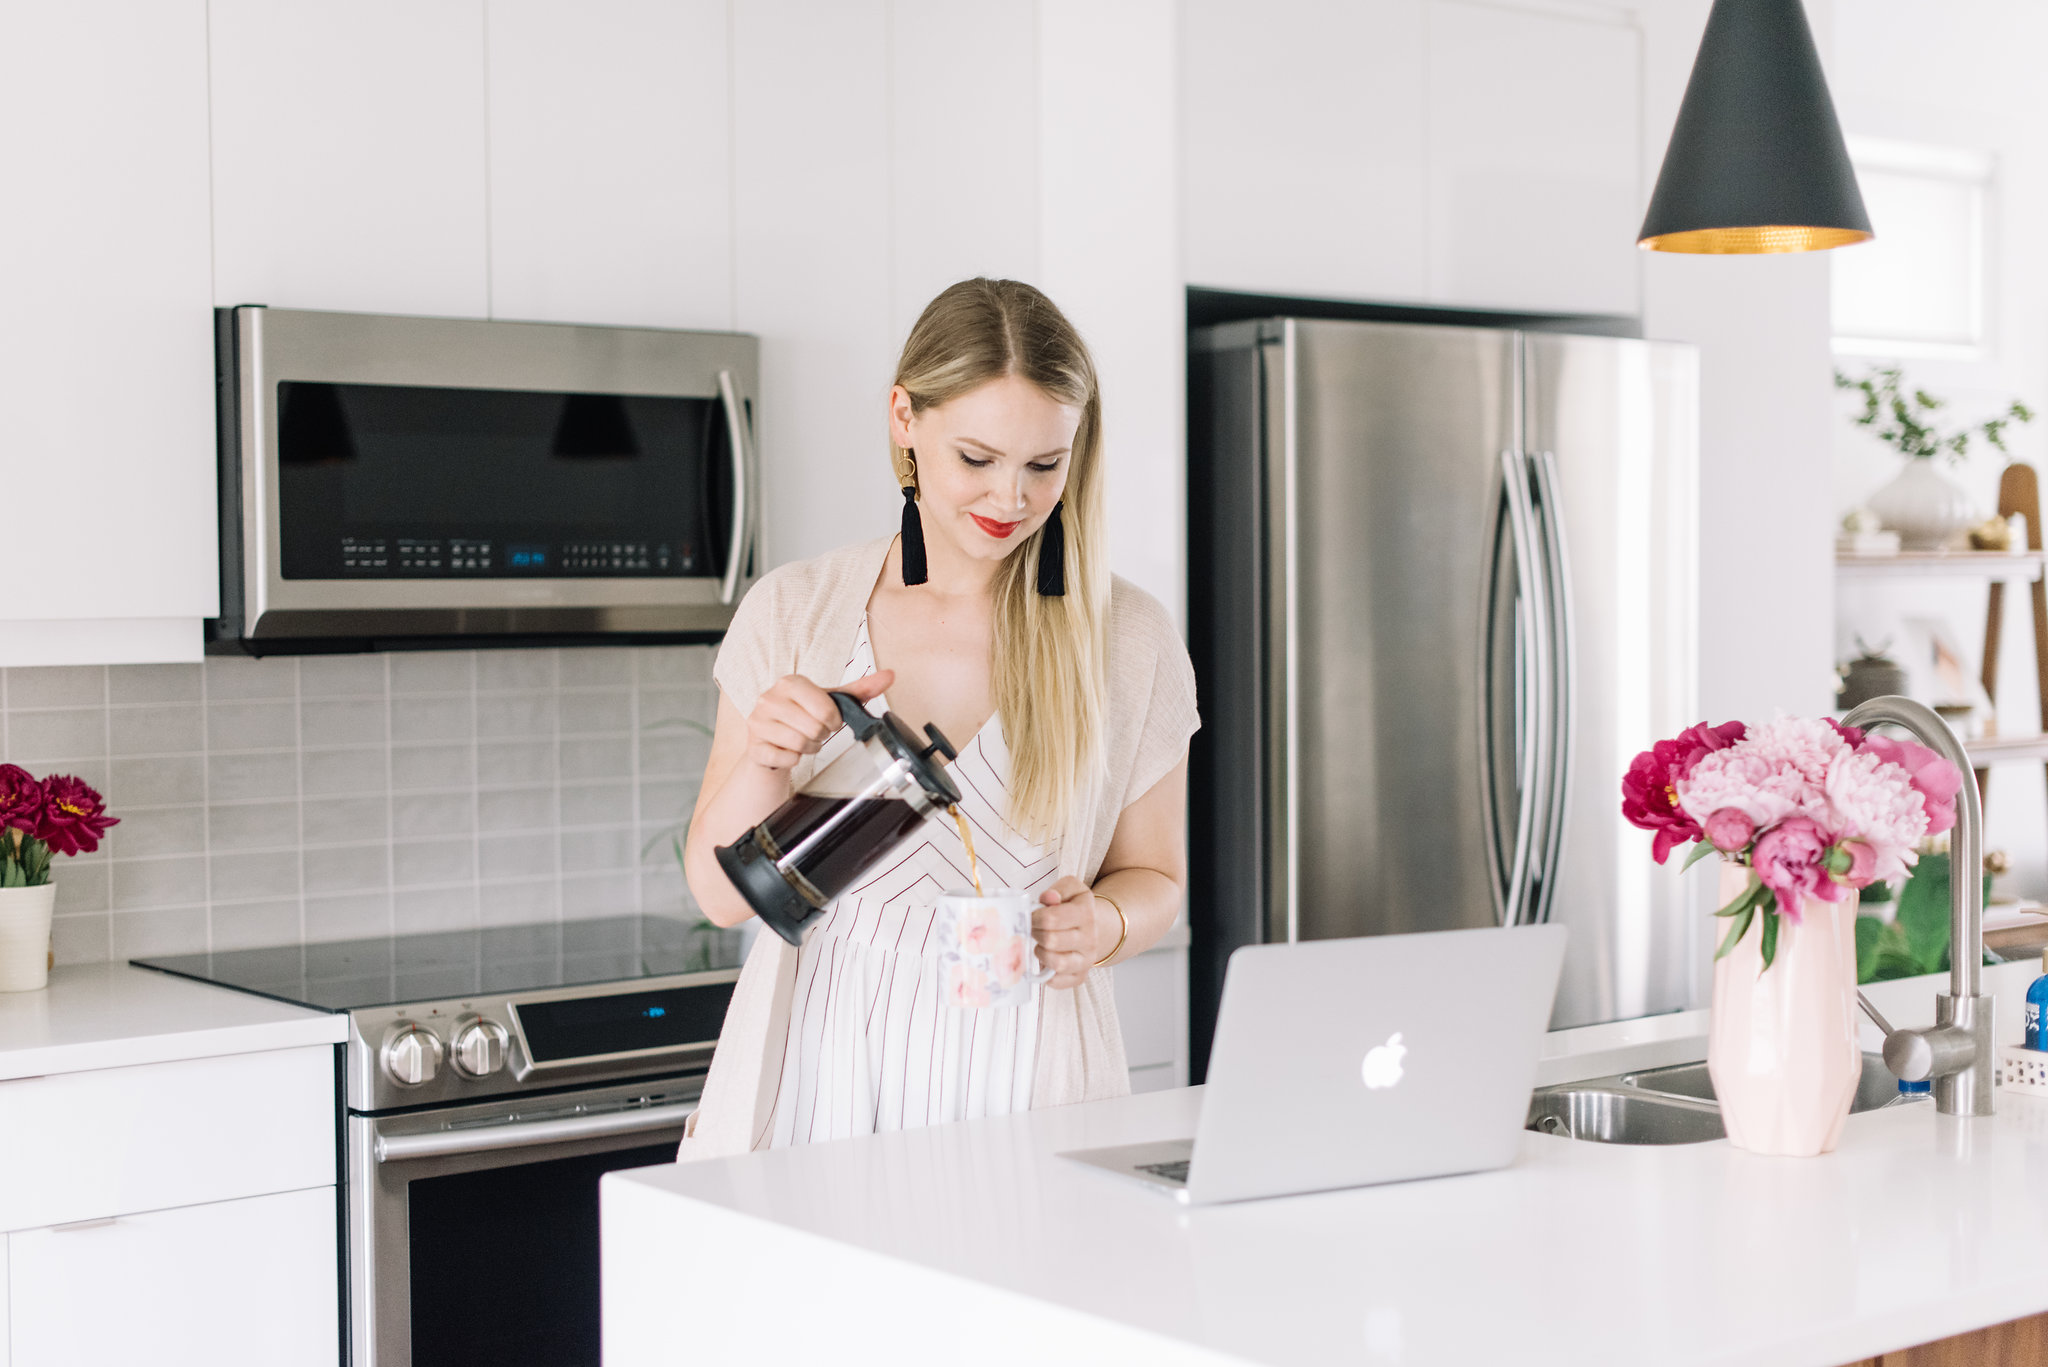 kitchen lifestyle photoshoot, pink peonies